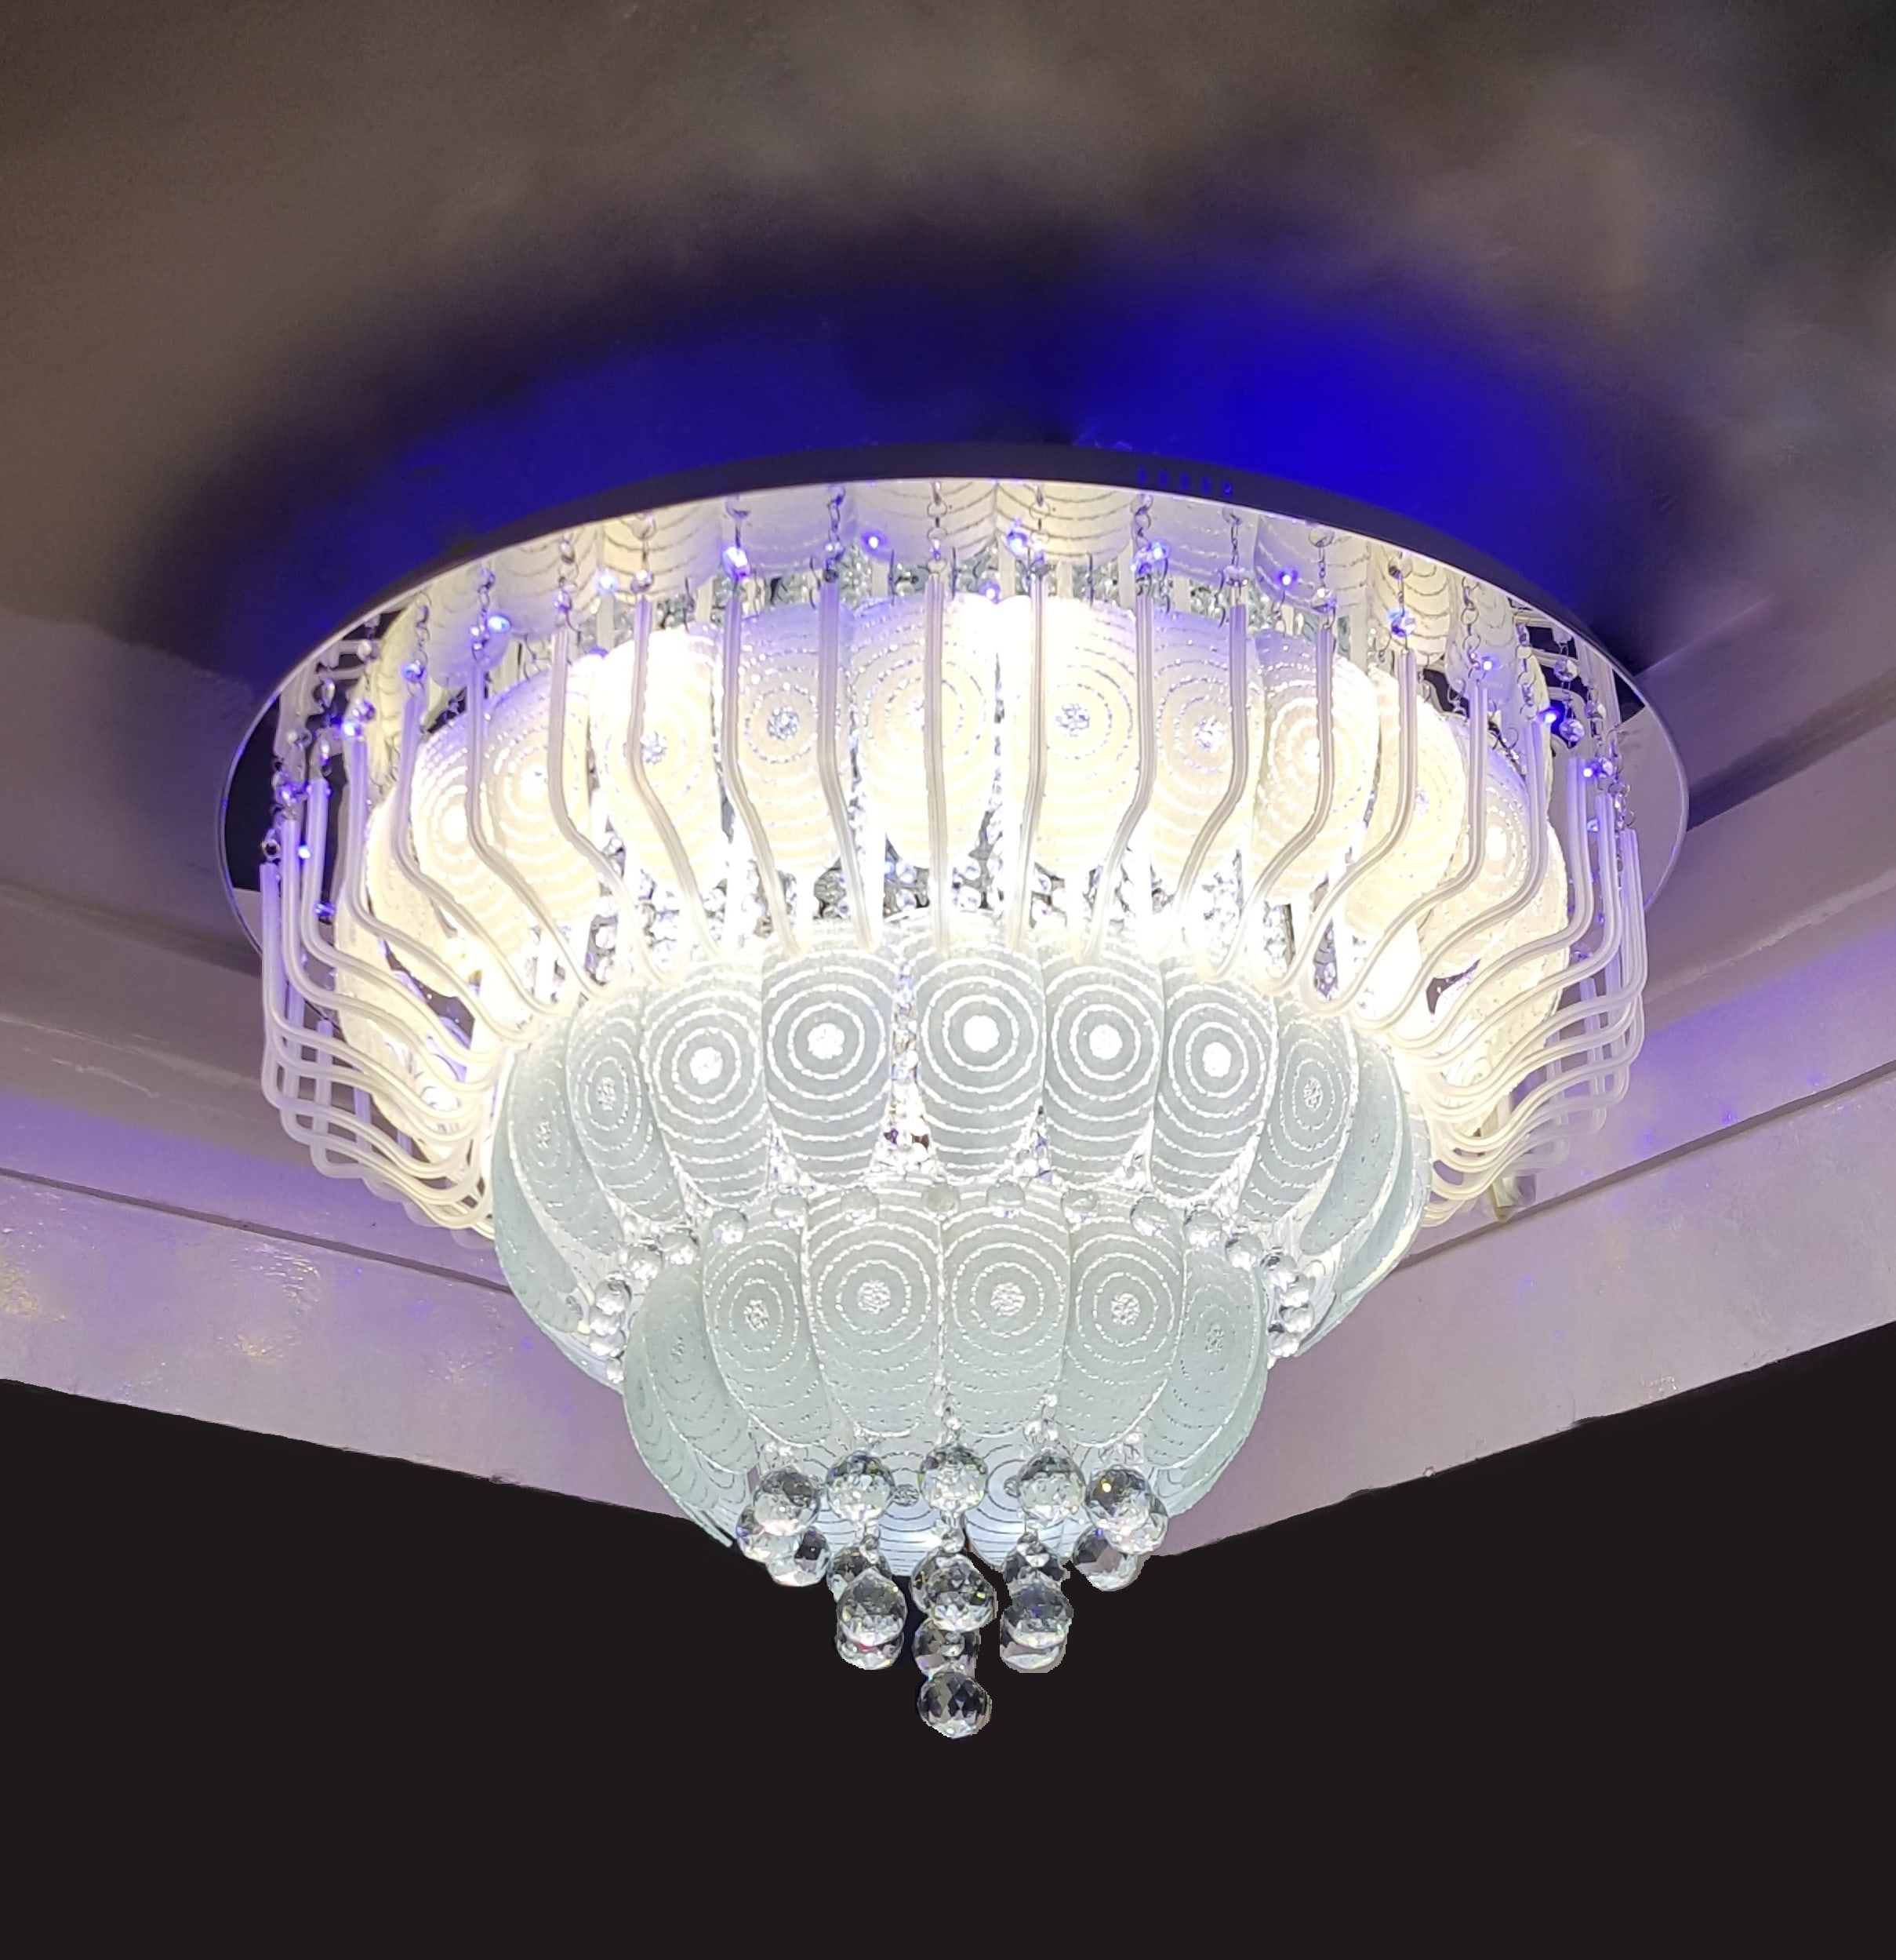 1000mm chandeliers buy online in india image1 mozeypictures Images